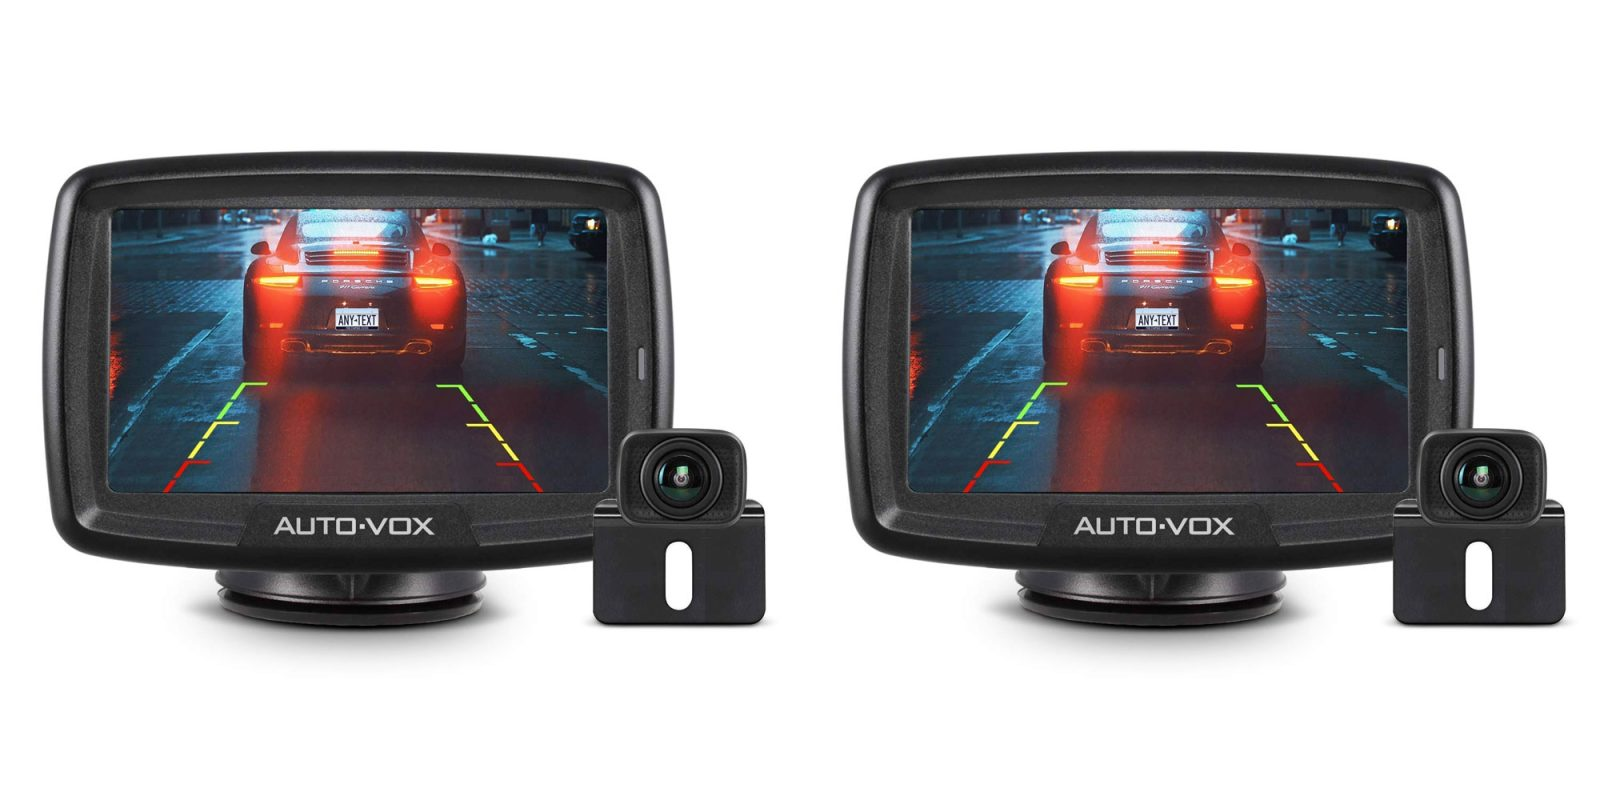 Save nearly $50 on this wireless backup camera kit to your car for $72